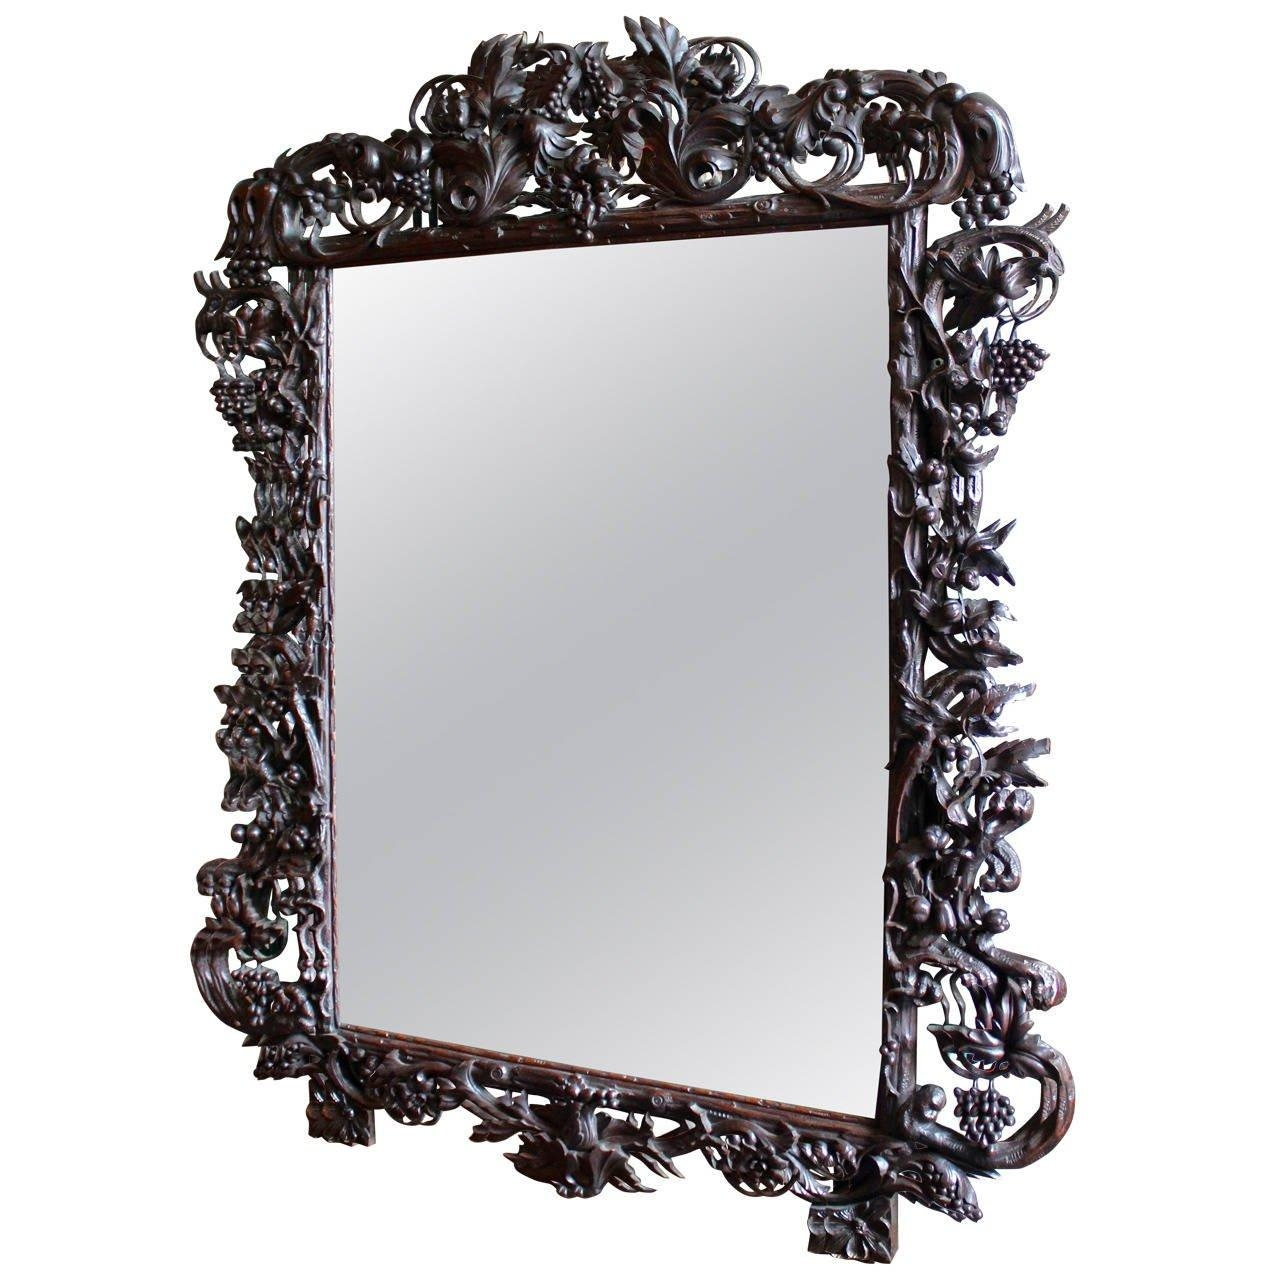 Late 19Th Century Ornate Large Black Forest French Mirror At 1Stdibs With Large Black Vintage Mirror (Image 12 of 20)